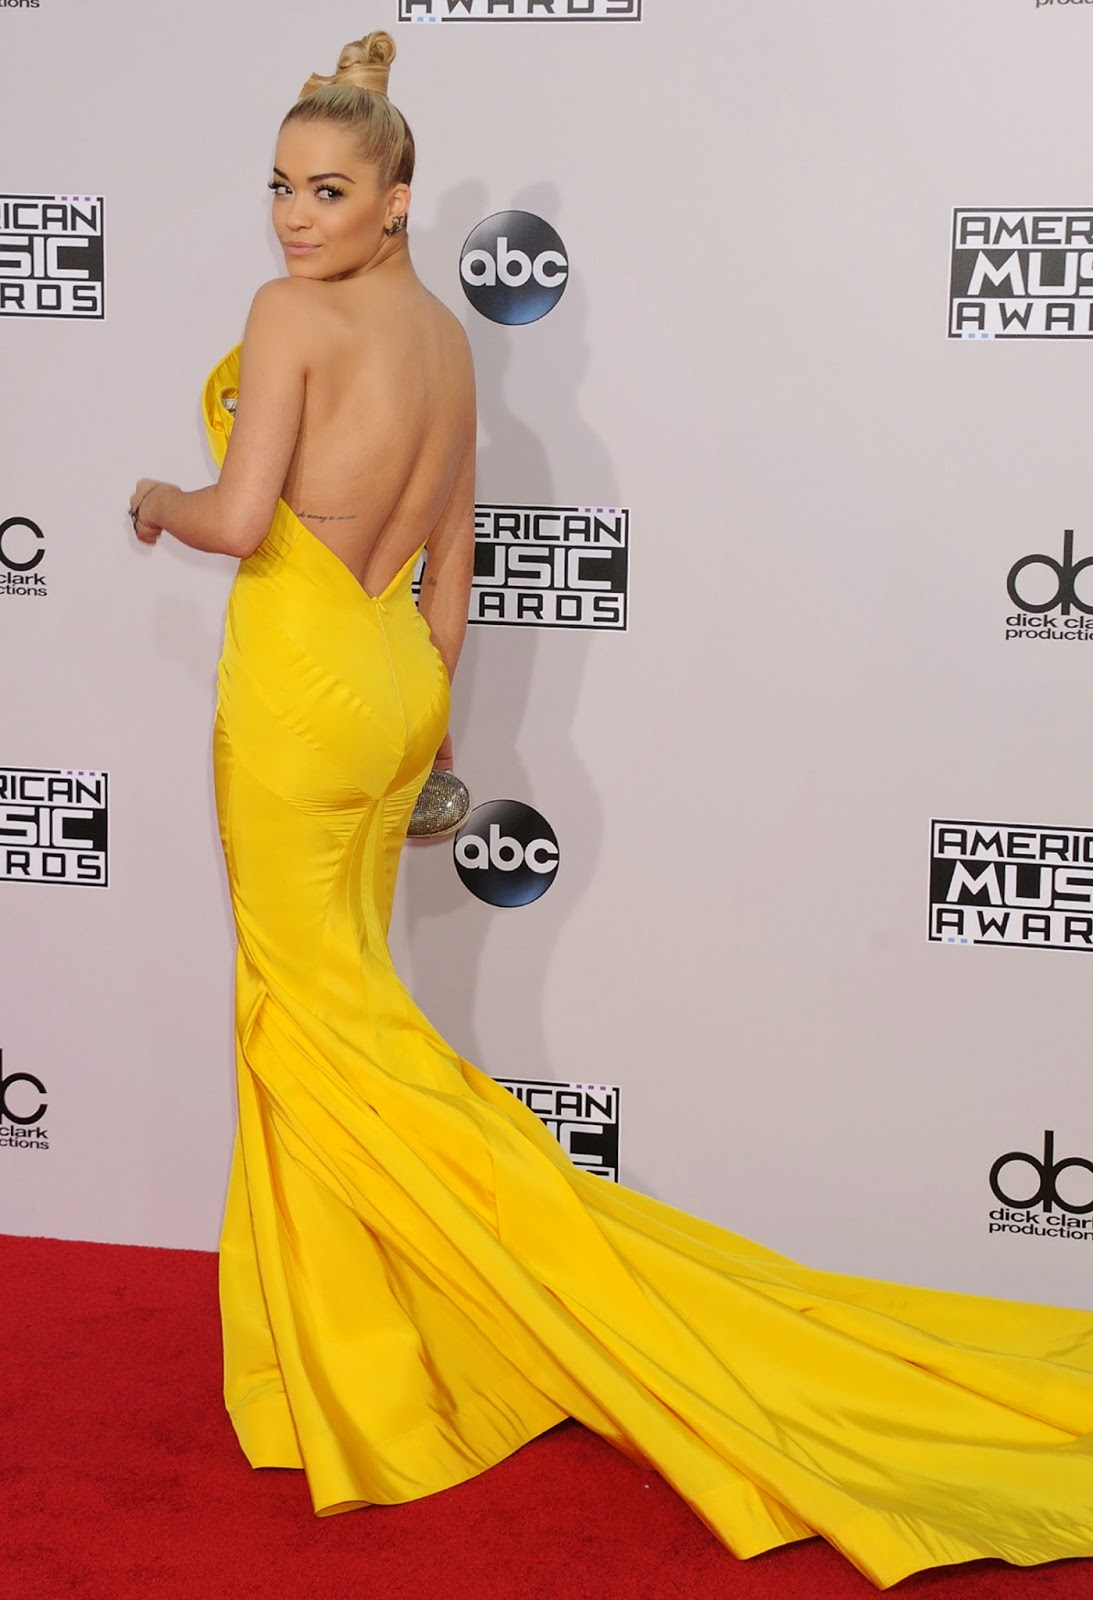 Rita Ora Red Carpet Photos - 2014 American Music Awards